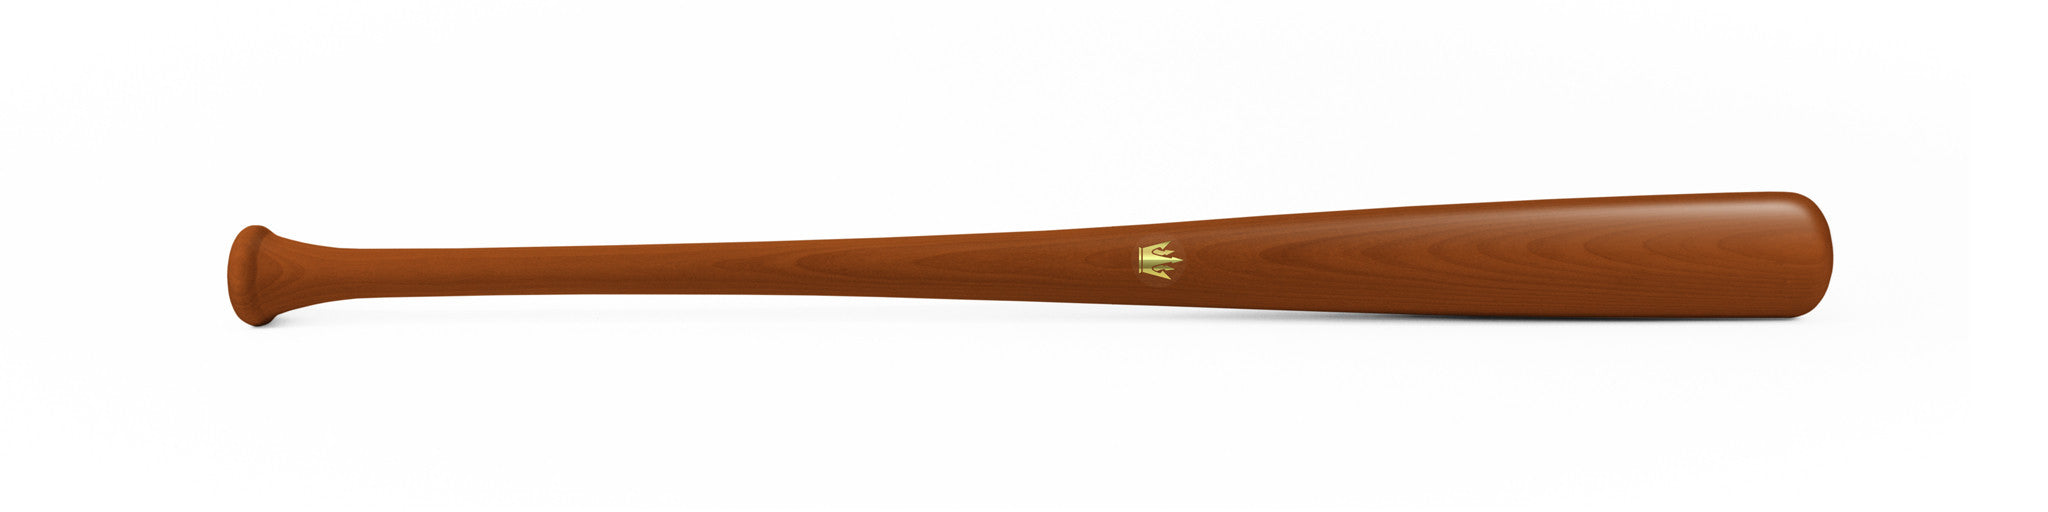 Wood bat - Maple model Y271 Honey - 9